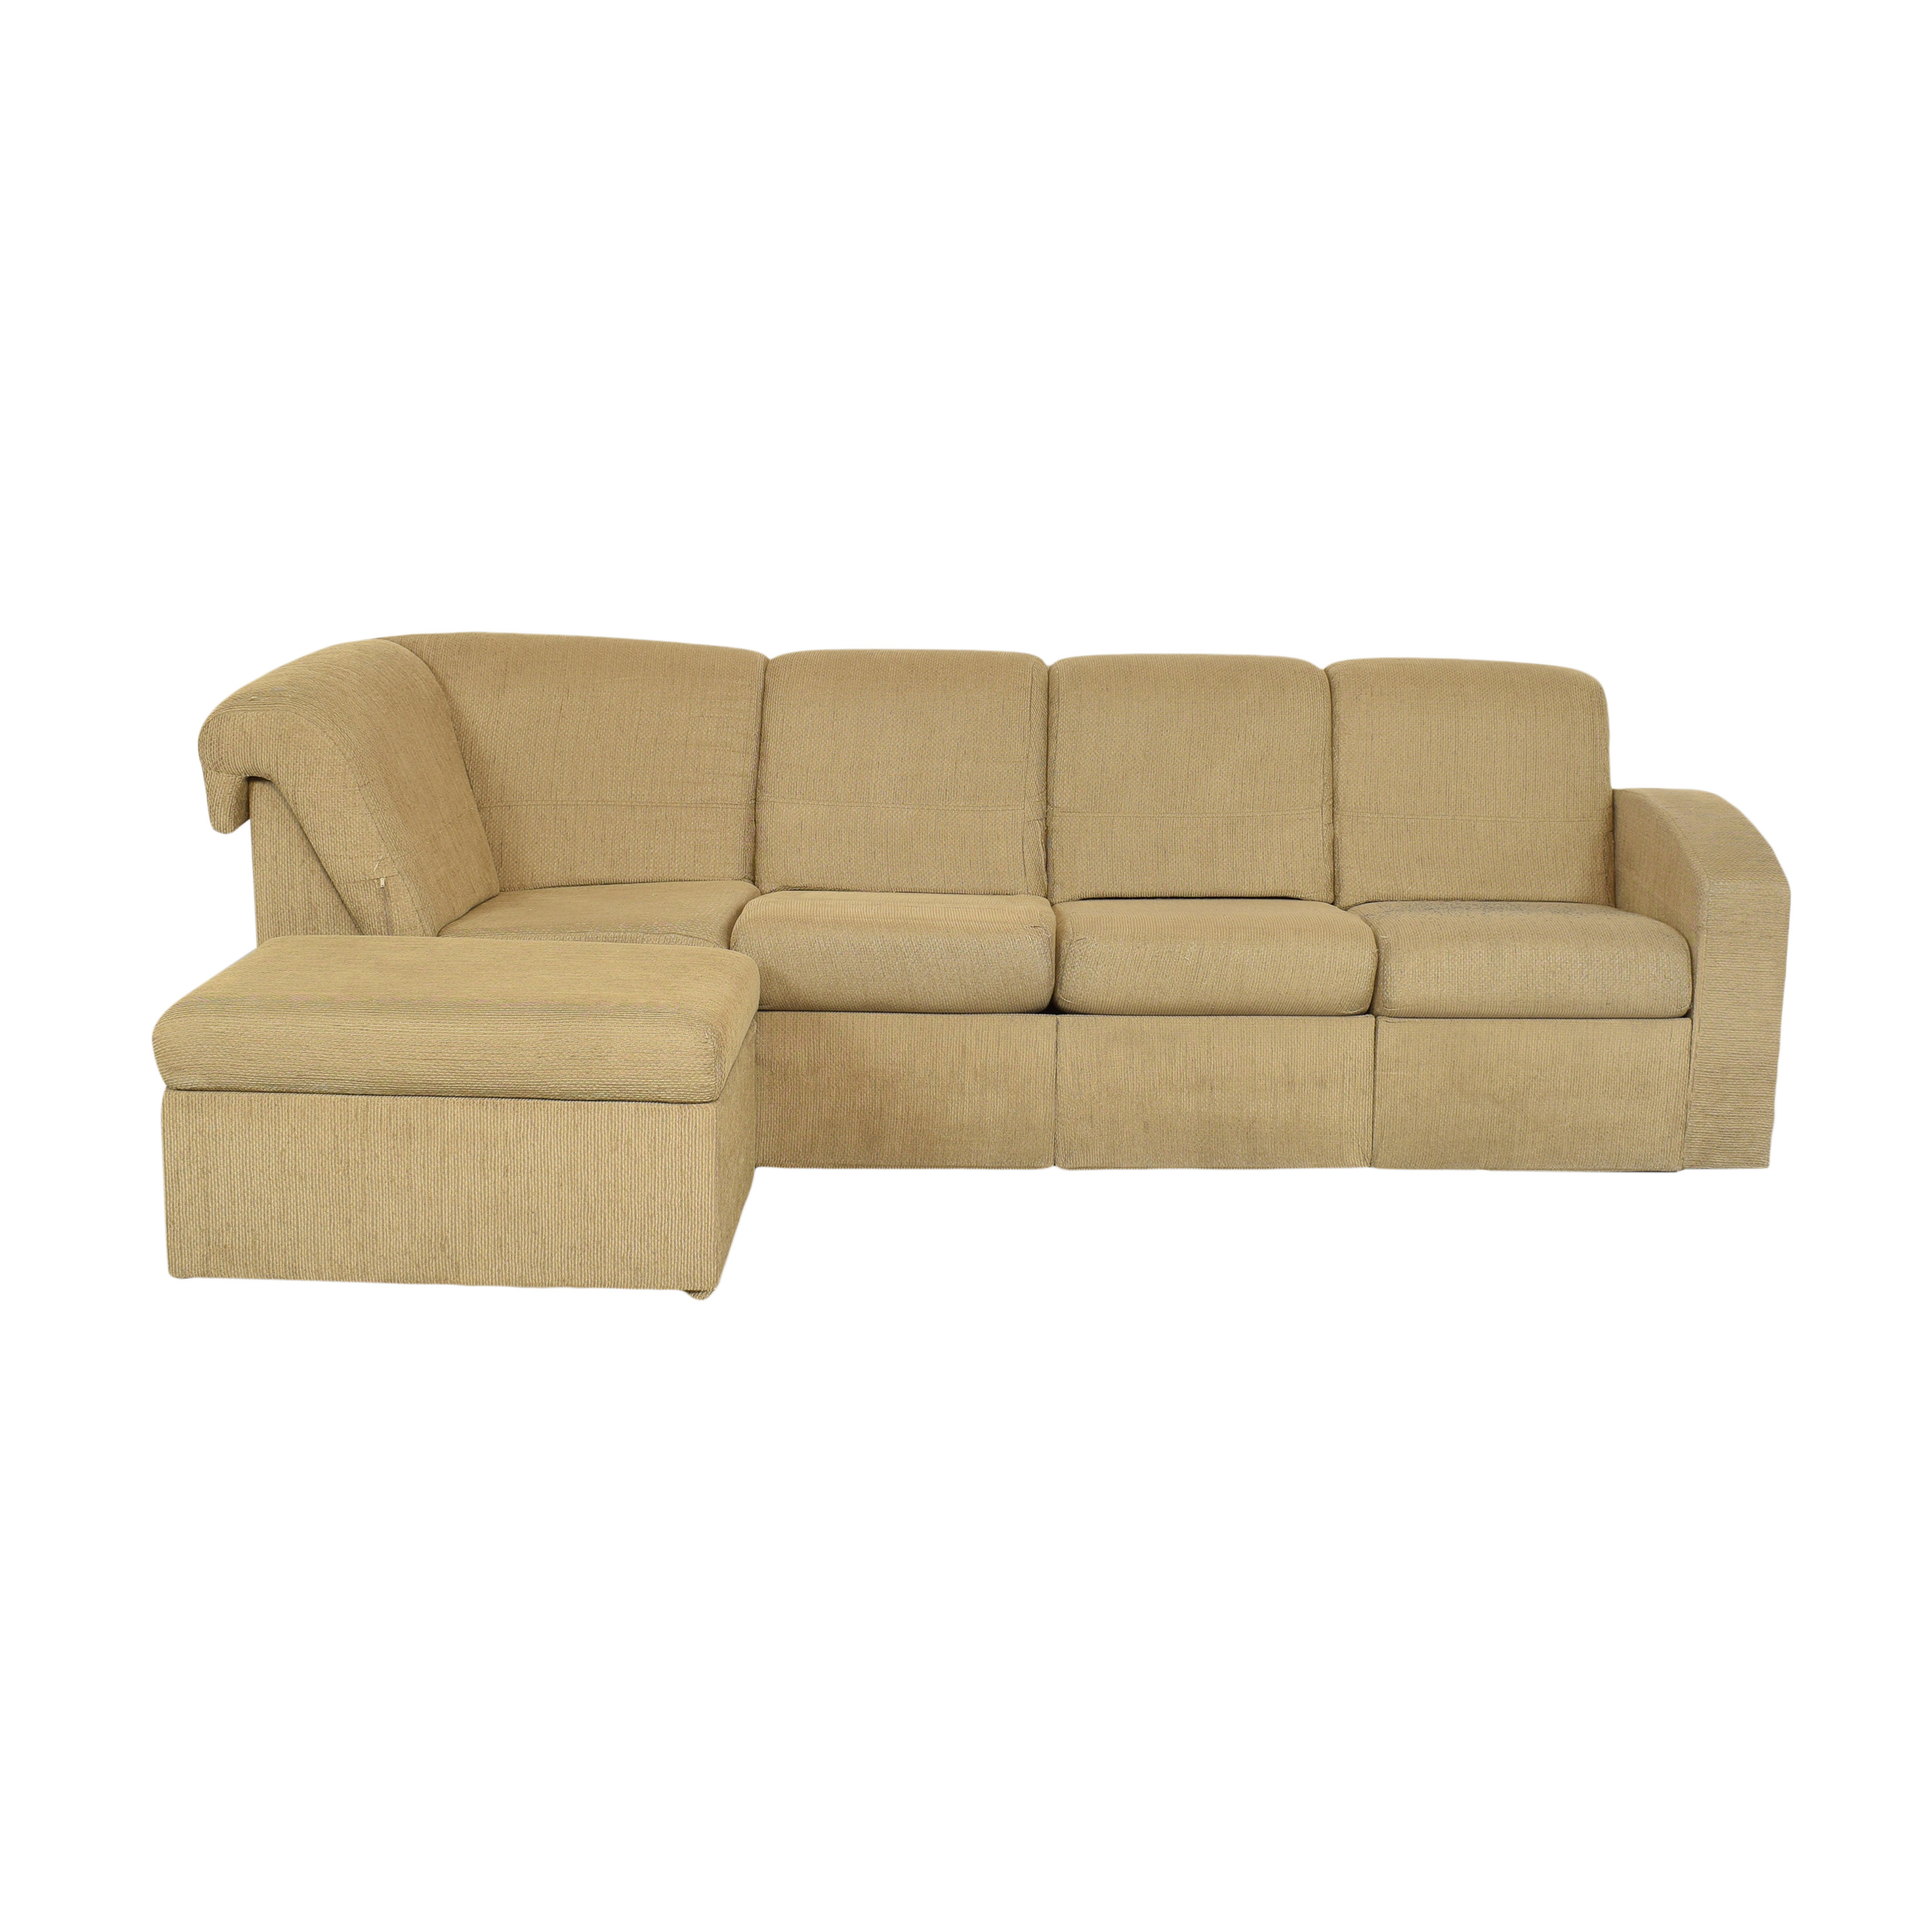 shop Home Reserve Home Reserve Brooks Sectional Couch online